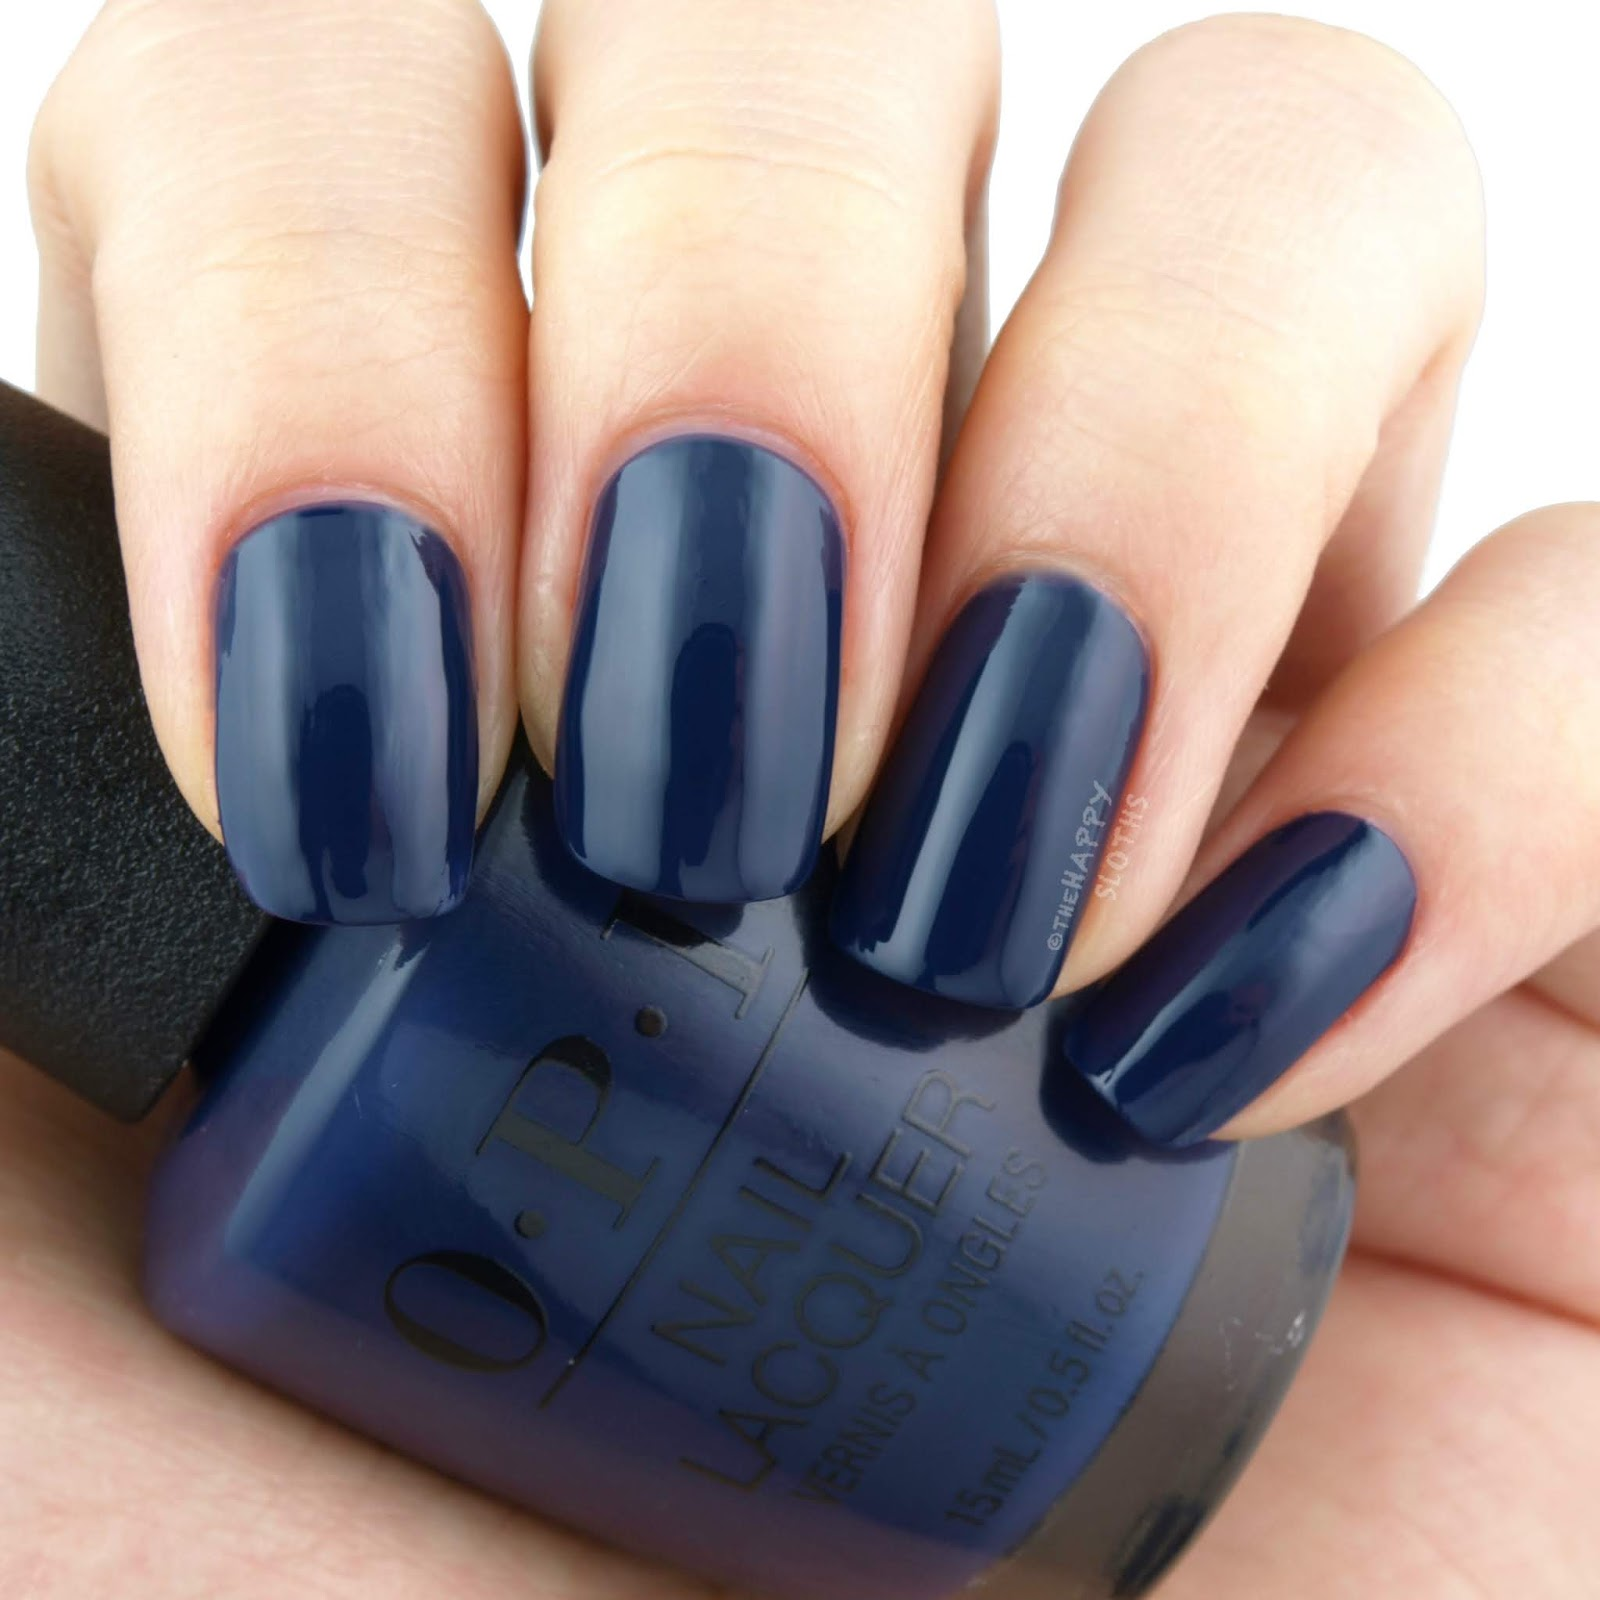 OPI   Holiday 2018 Nutcracker Collection   March in Uniform: Review and Swatches